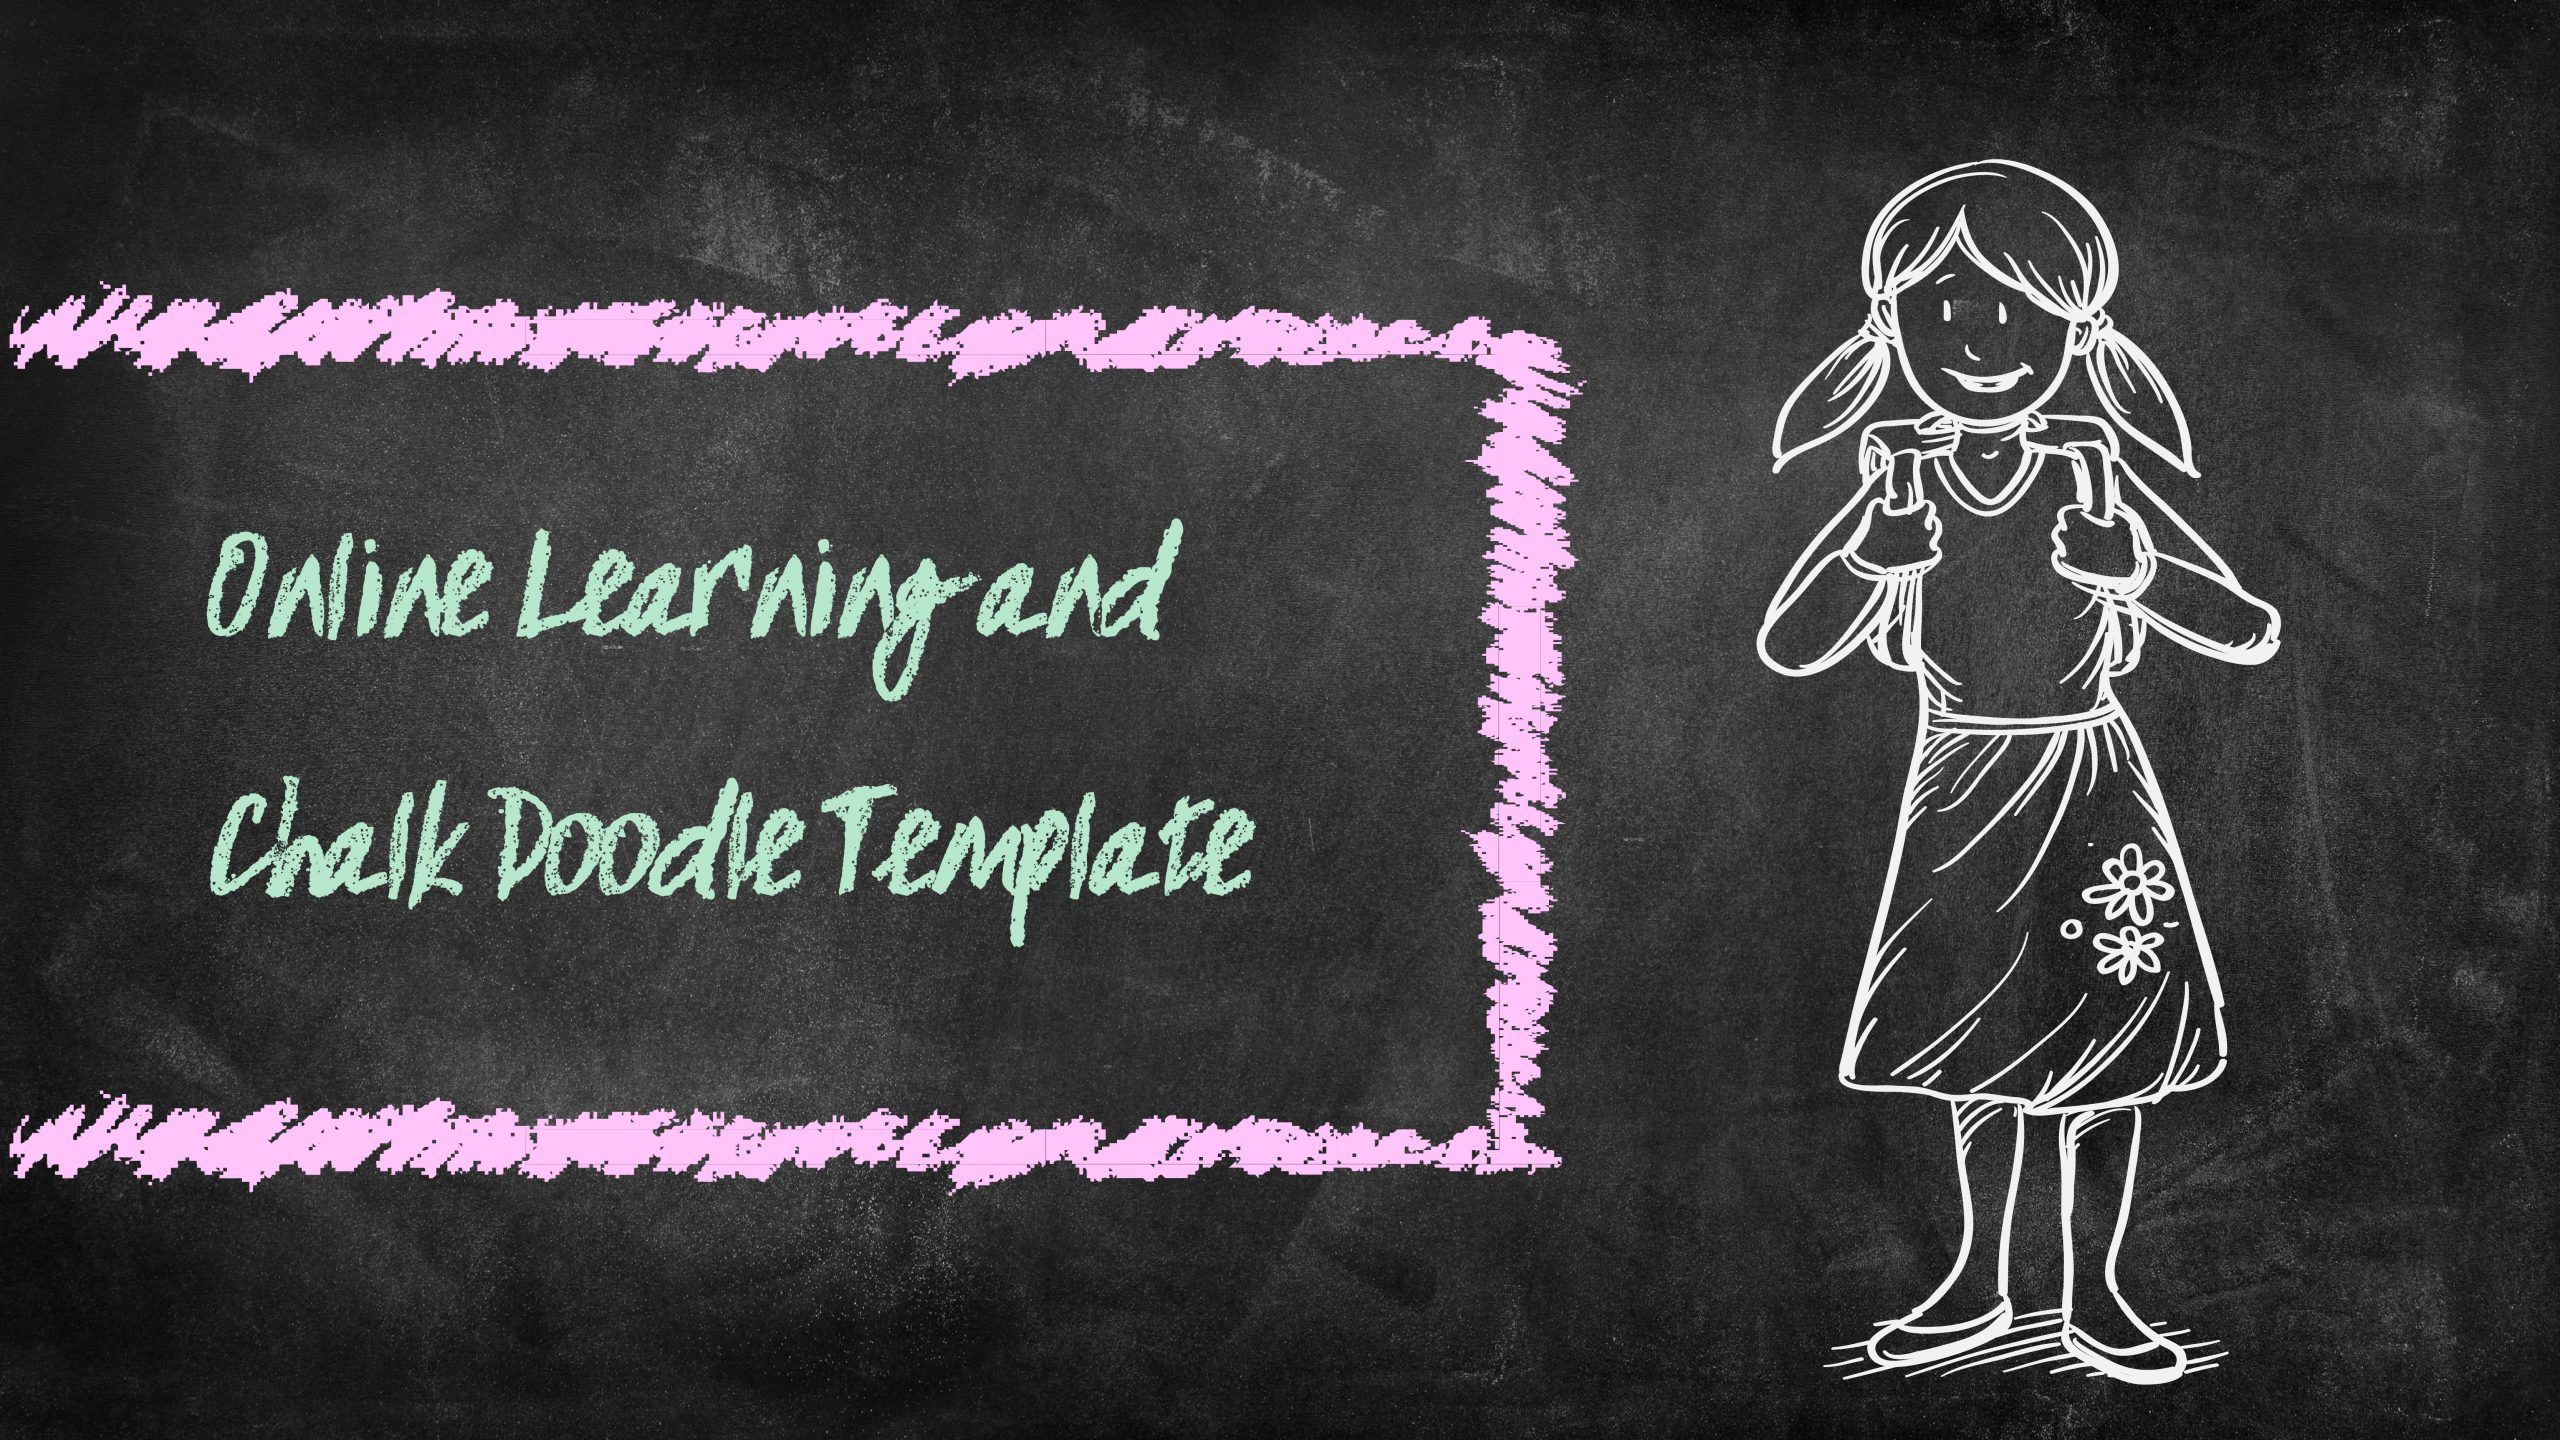 Free online learning and chalk doodle template